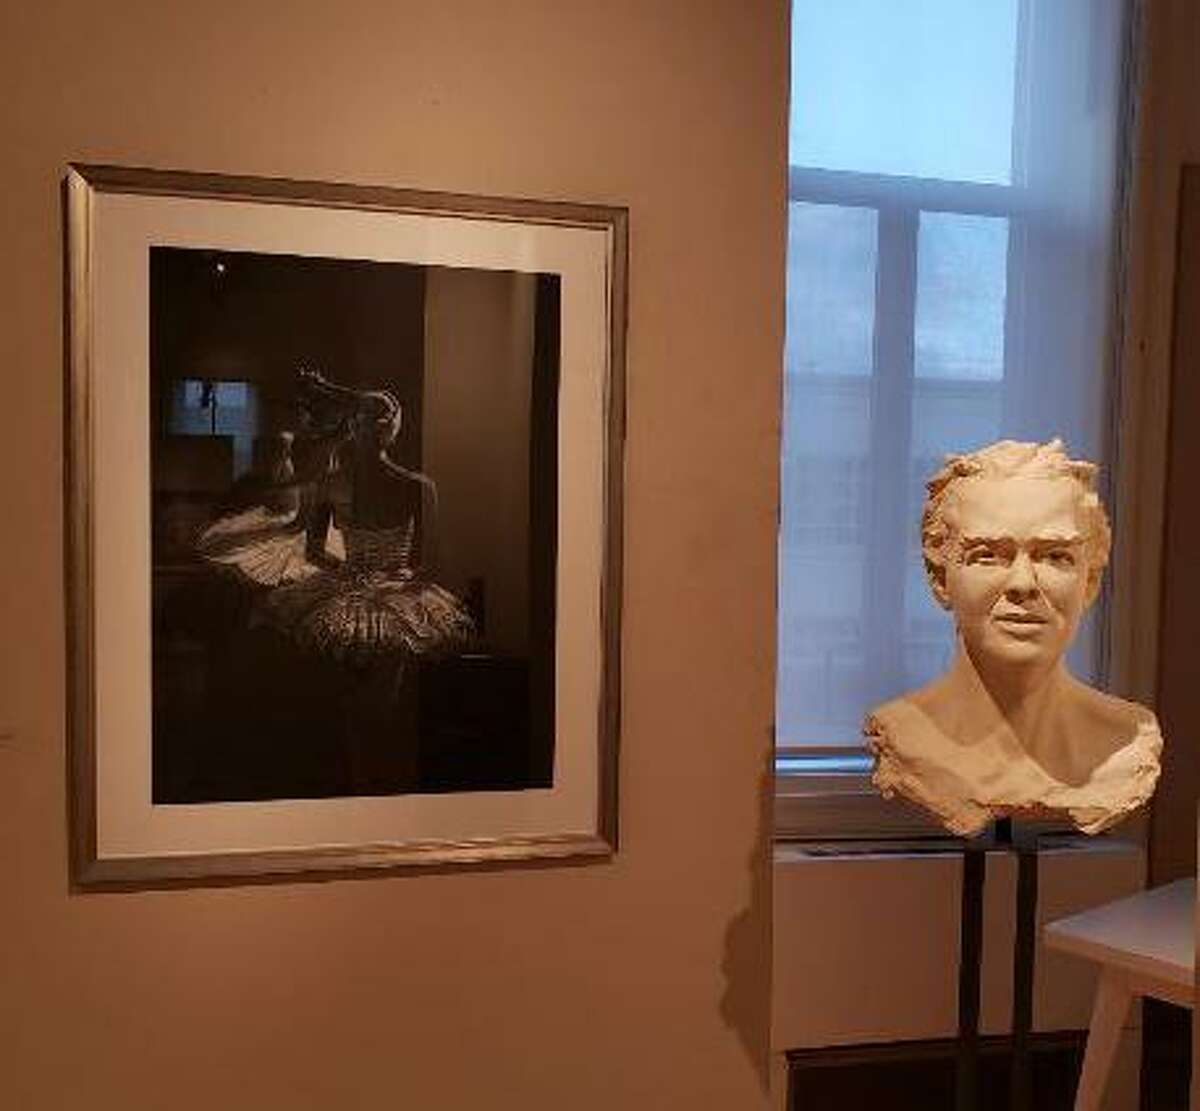 The Greenwich Art Society will offer in-person tours of the annual Bendheim Exhibit on Saturday, Oct. 17. Visitors are asked to be patient and wait outside while the gallery staff manages moving the groups in and out of building. The 103rd annual juried exhibition can also be viewed in a special online viewing room/virtual gallery space on the society's website. It is on display through Oct. 24 at the Bendheim Gallery.